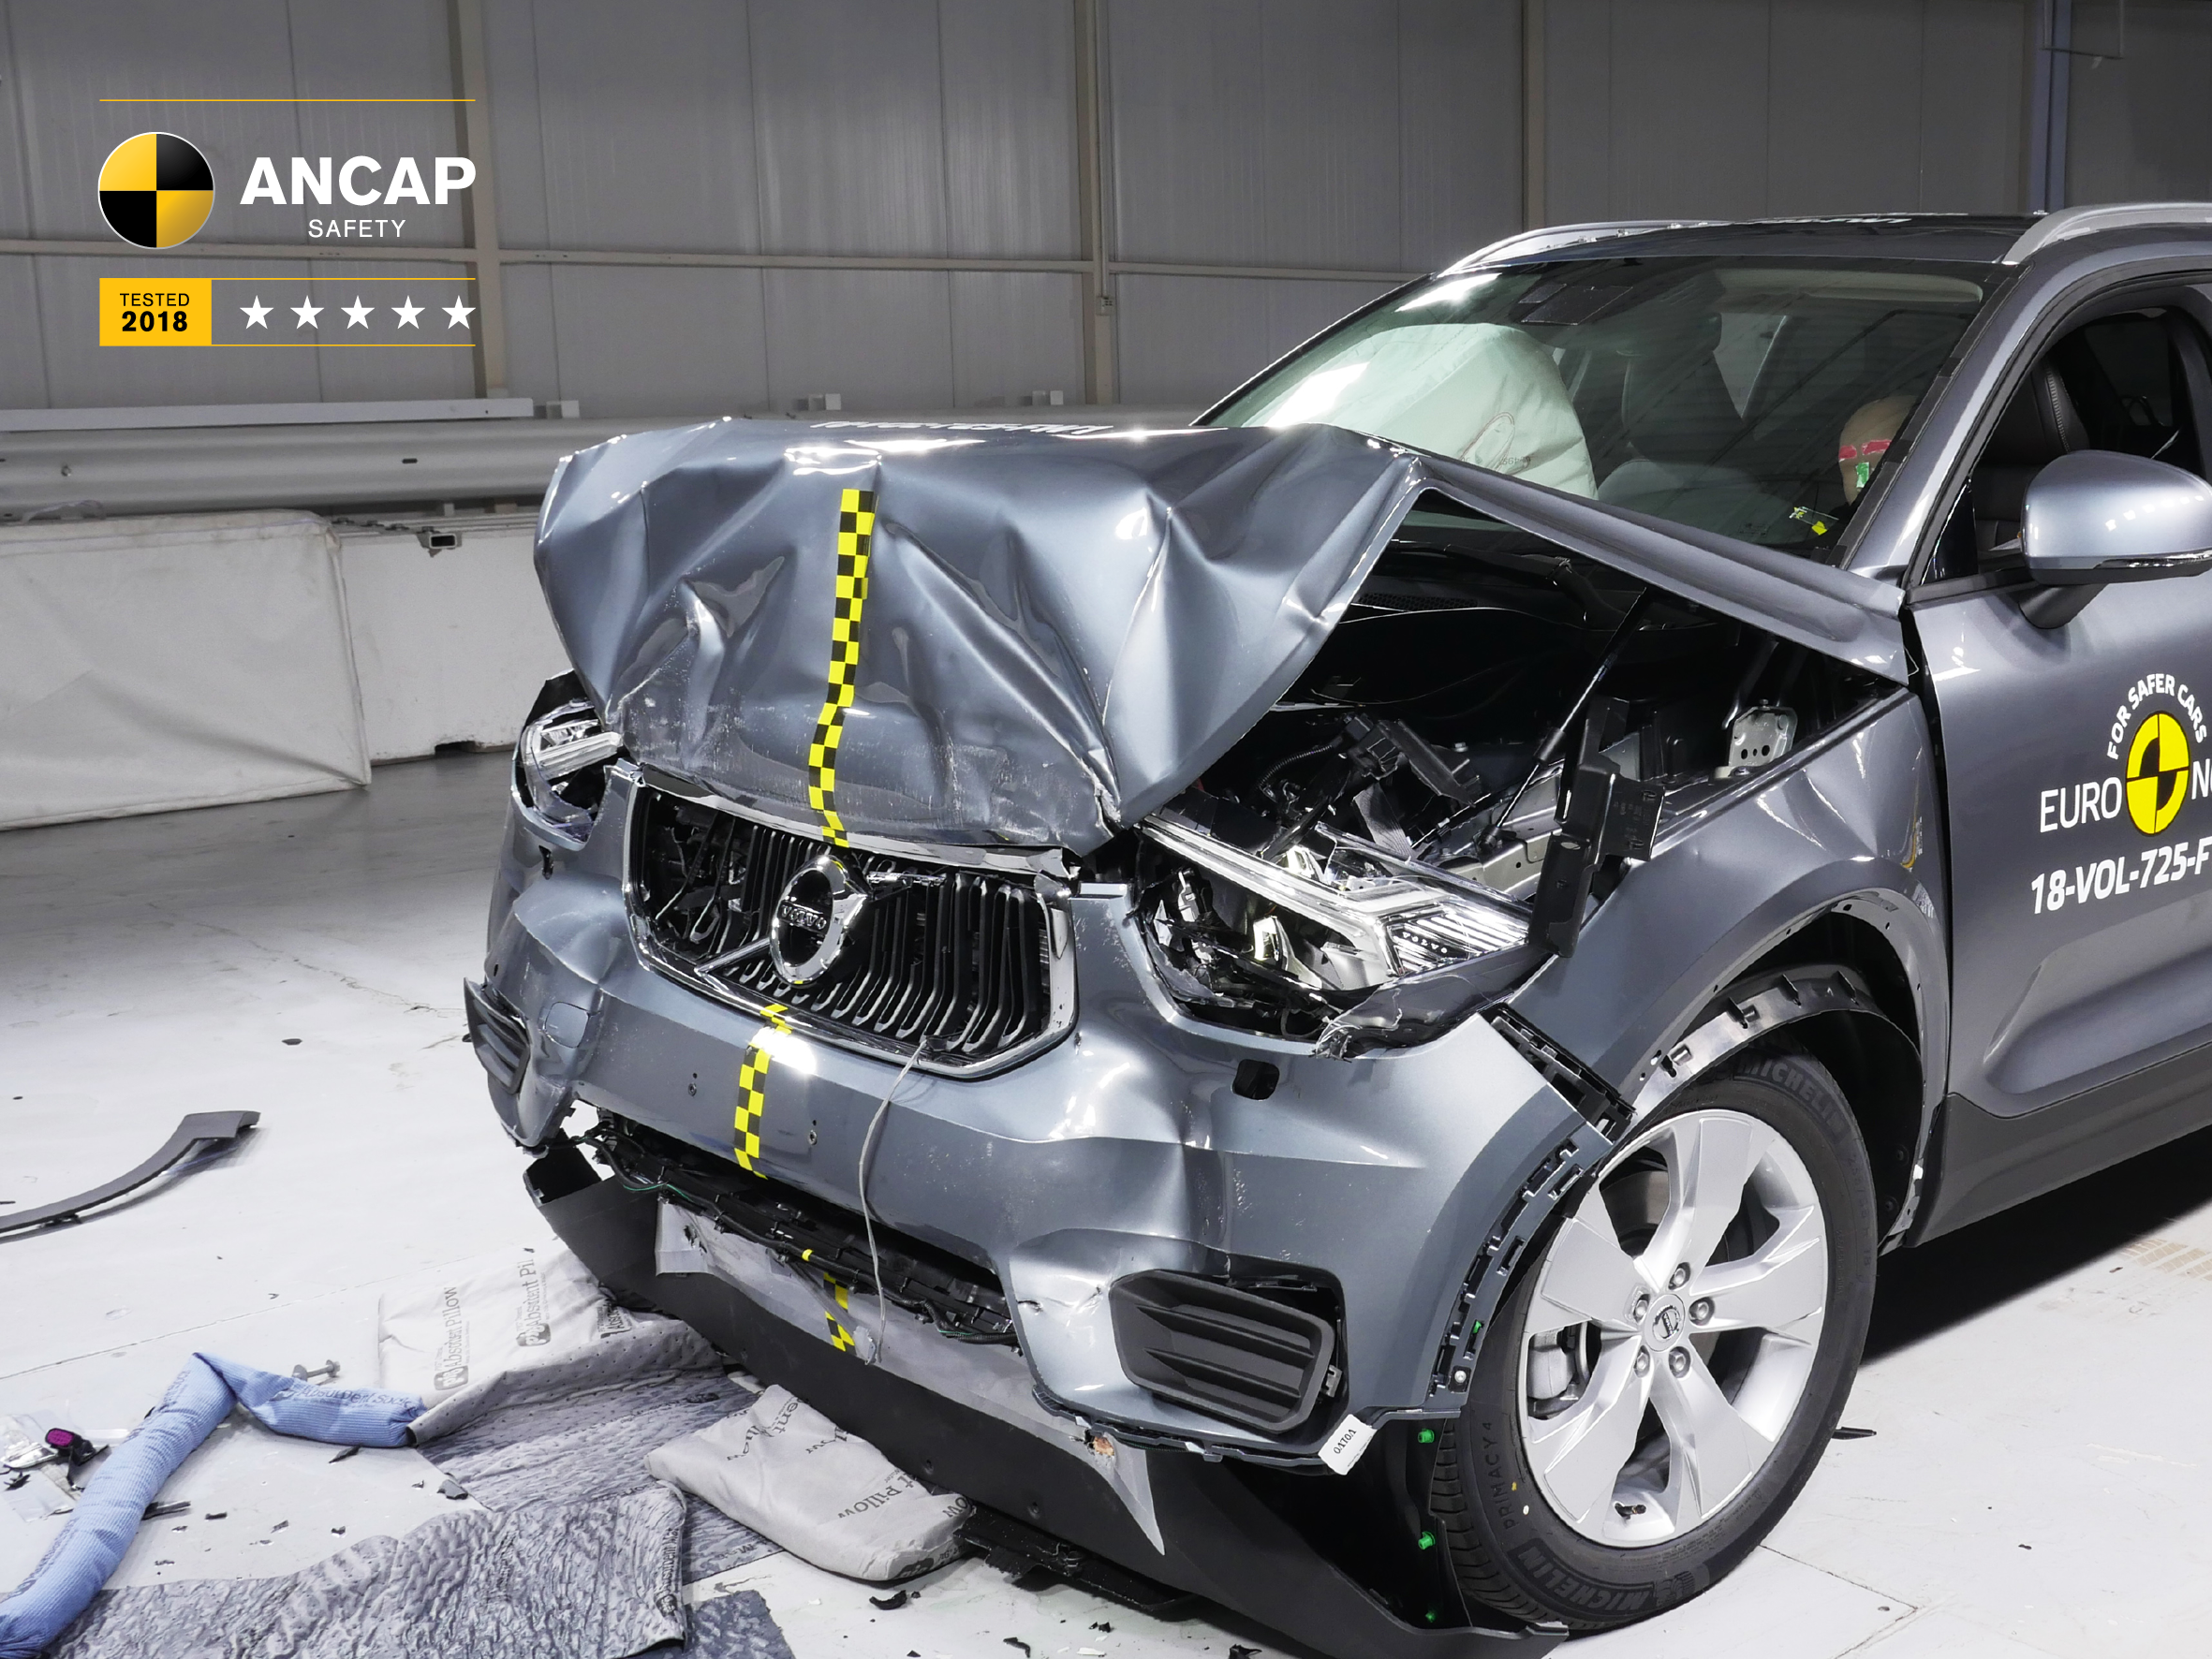 Volvo XC40 ANCAP crash test